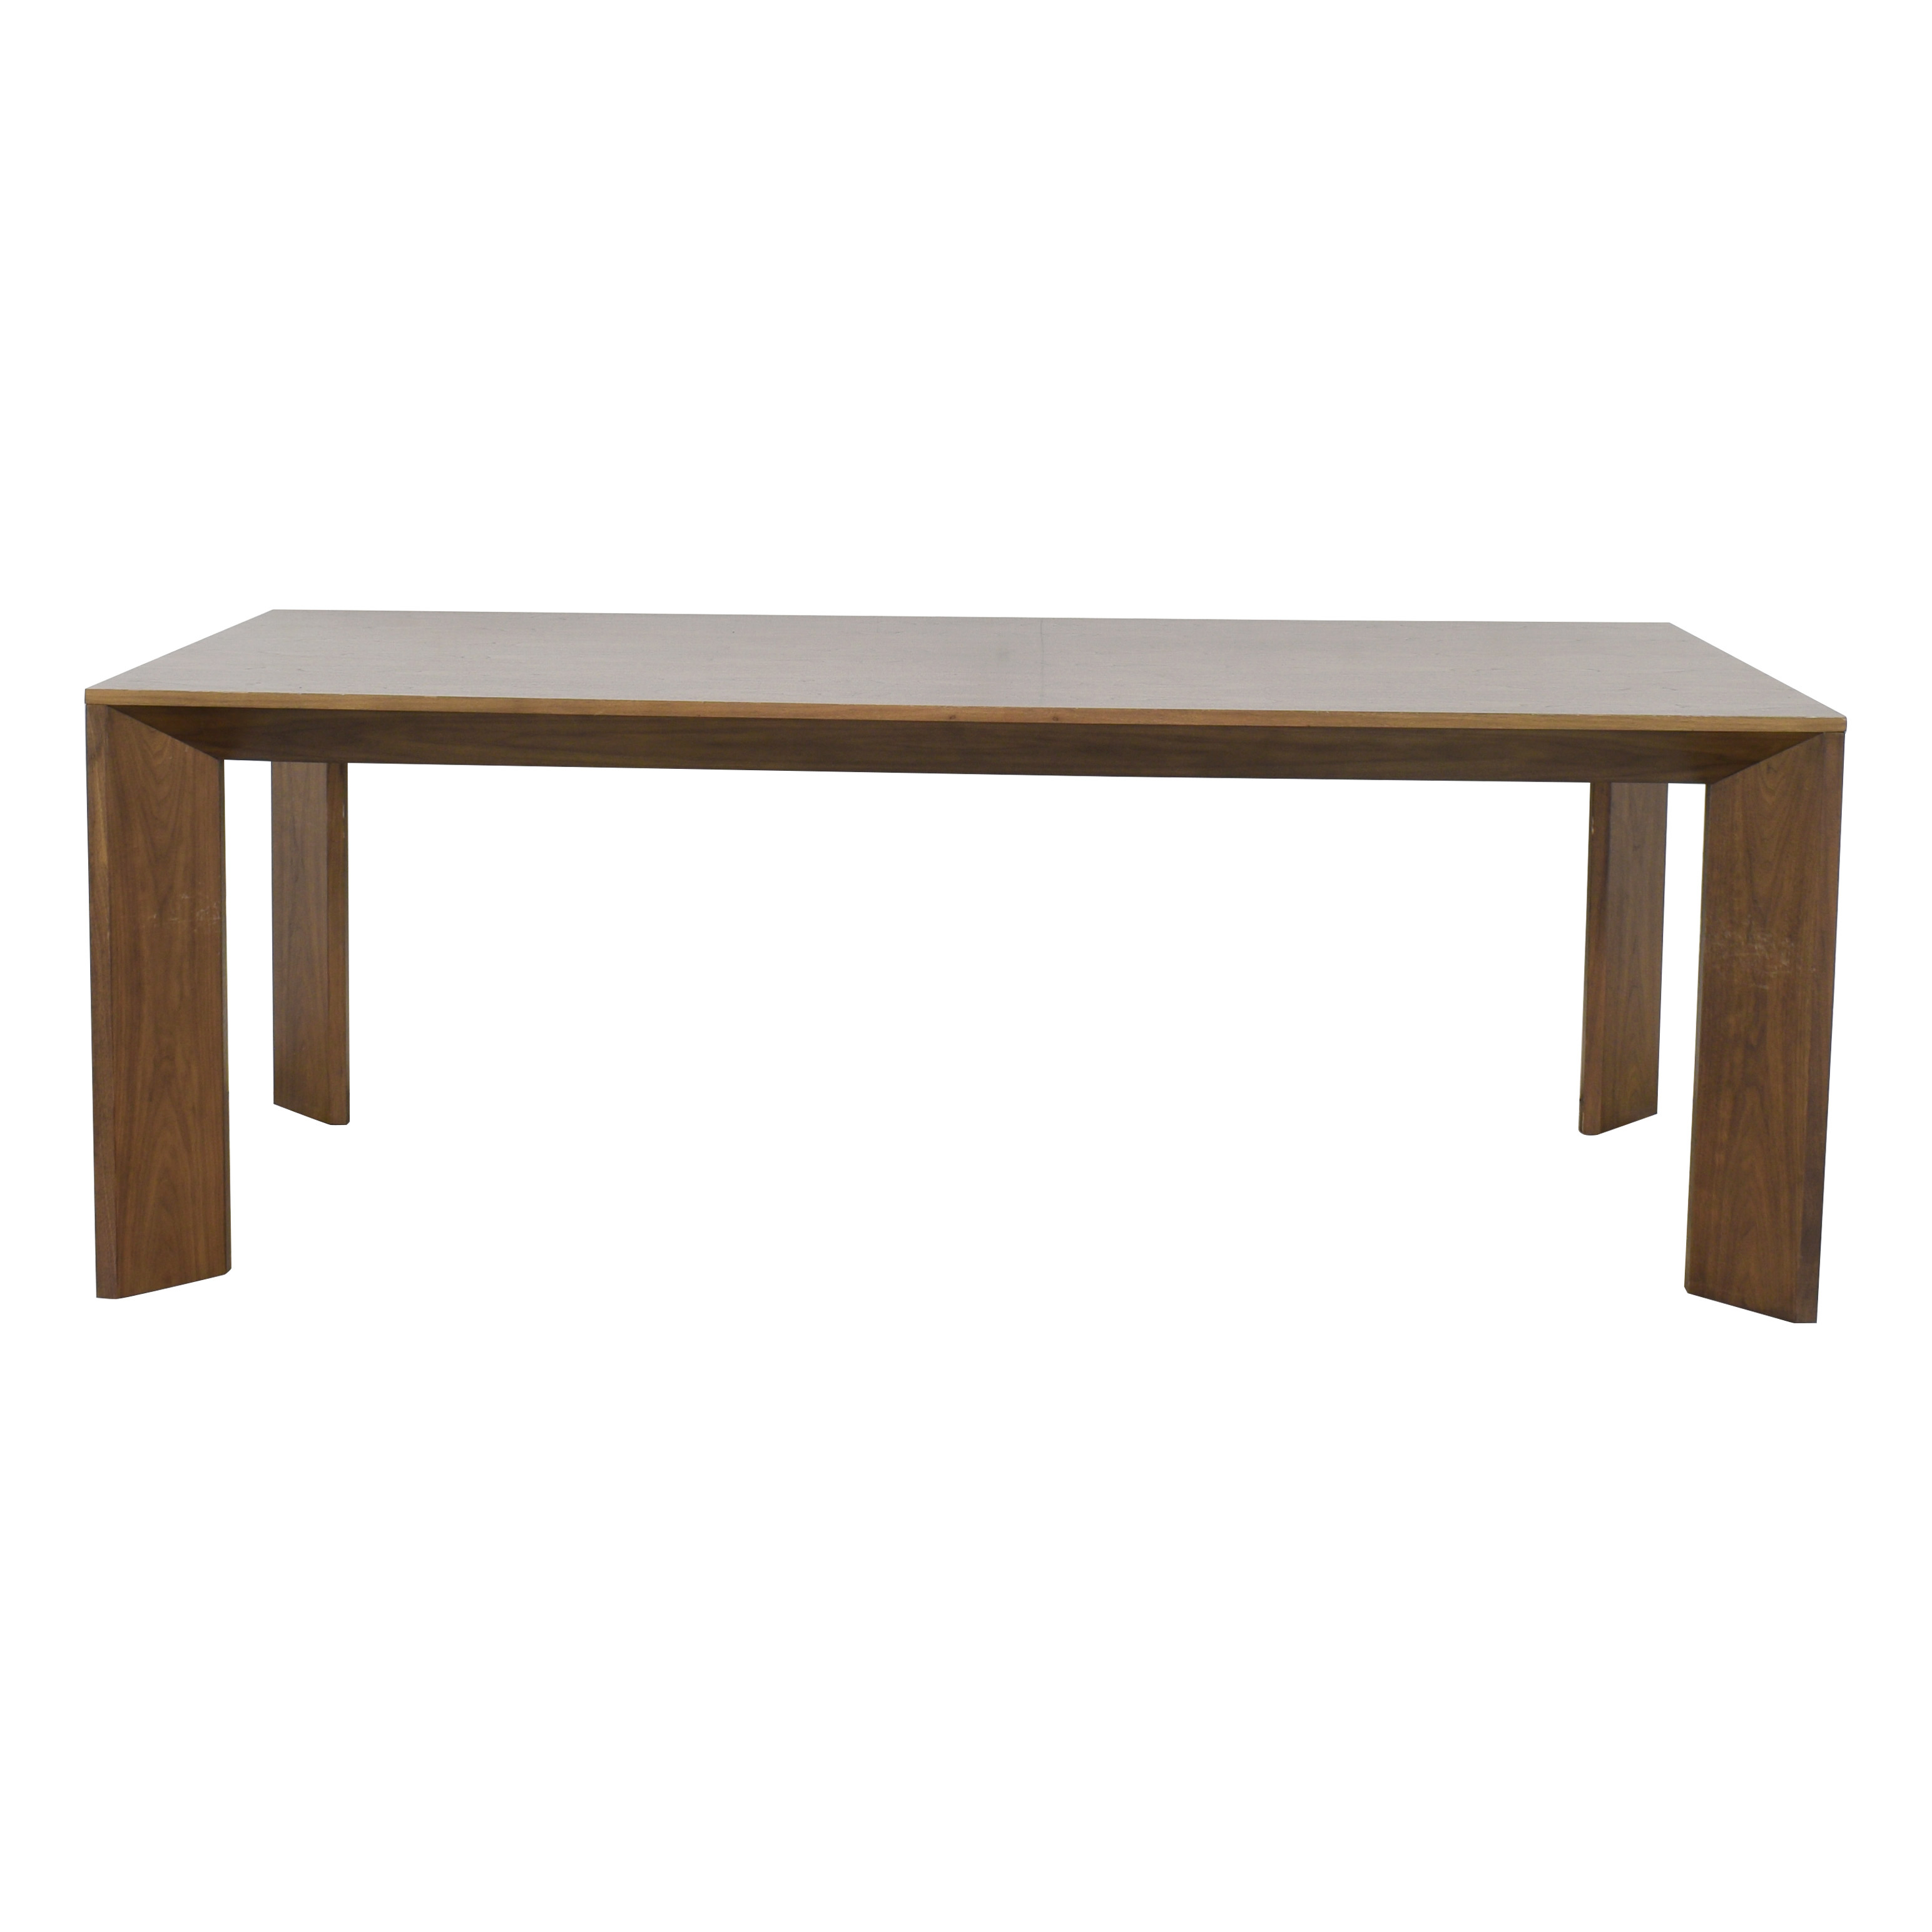 Restoration Hardware Arles Dining Table / Dinner Tables